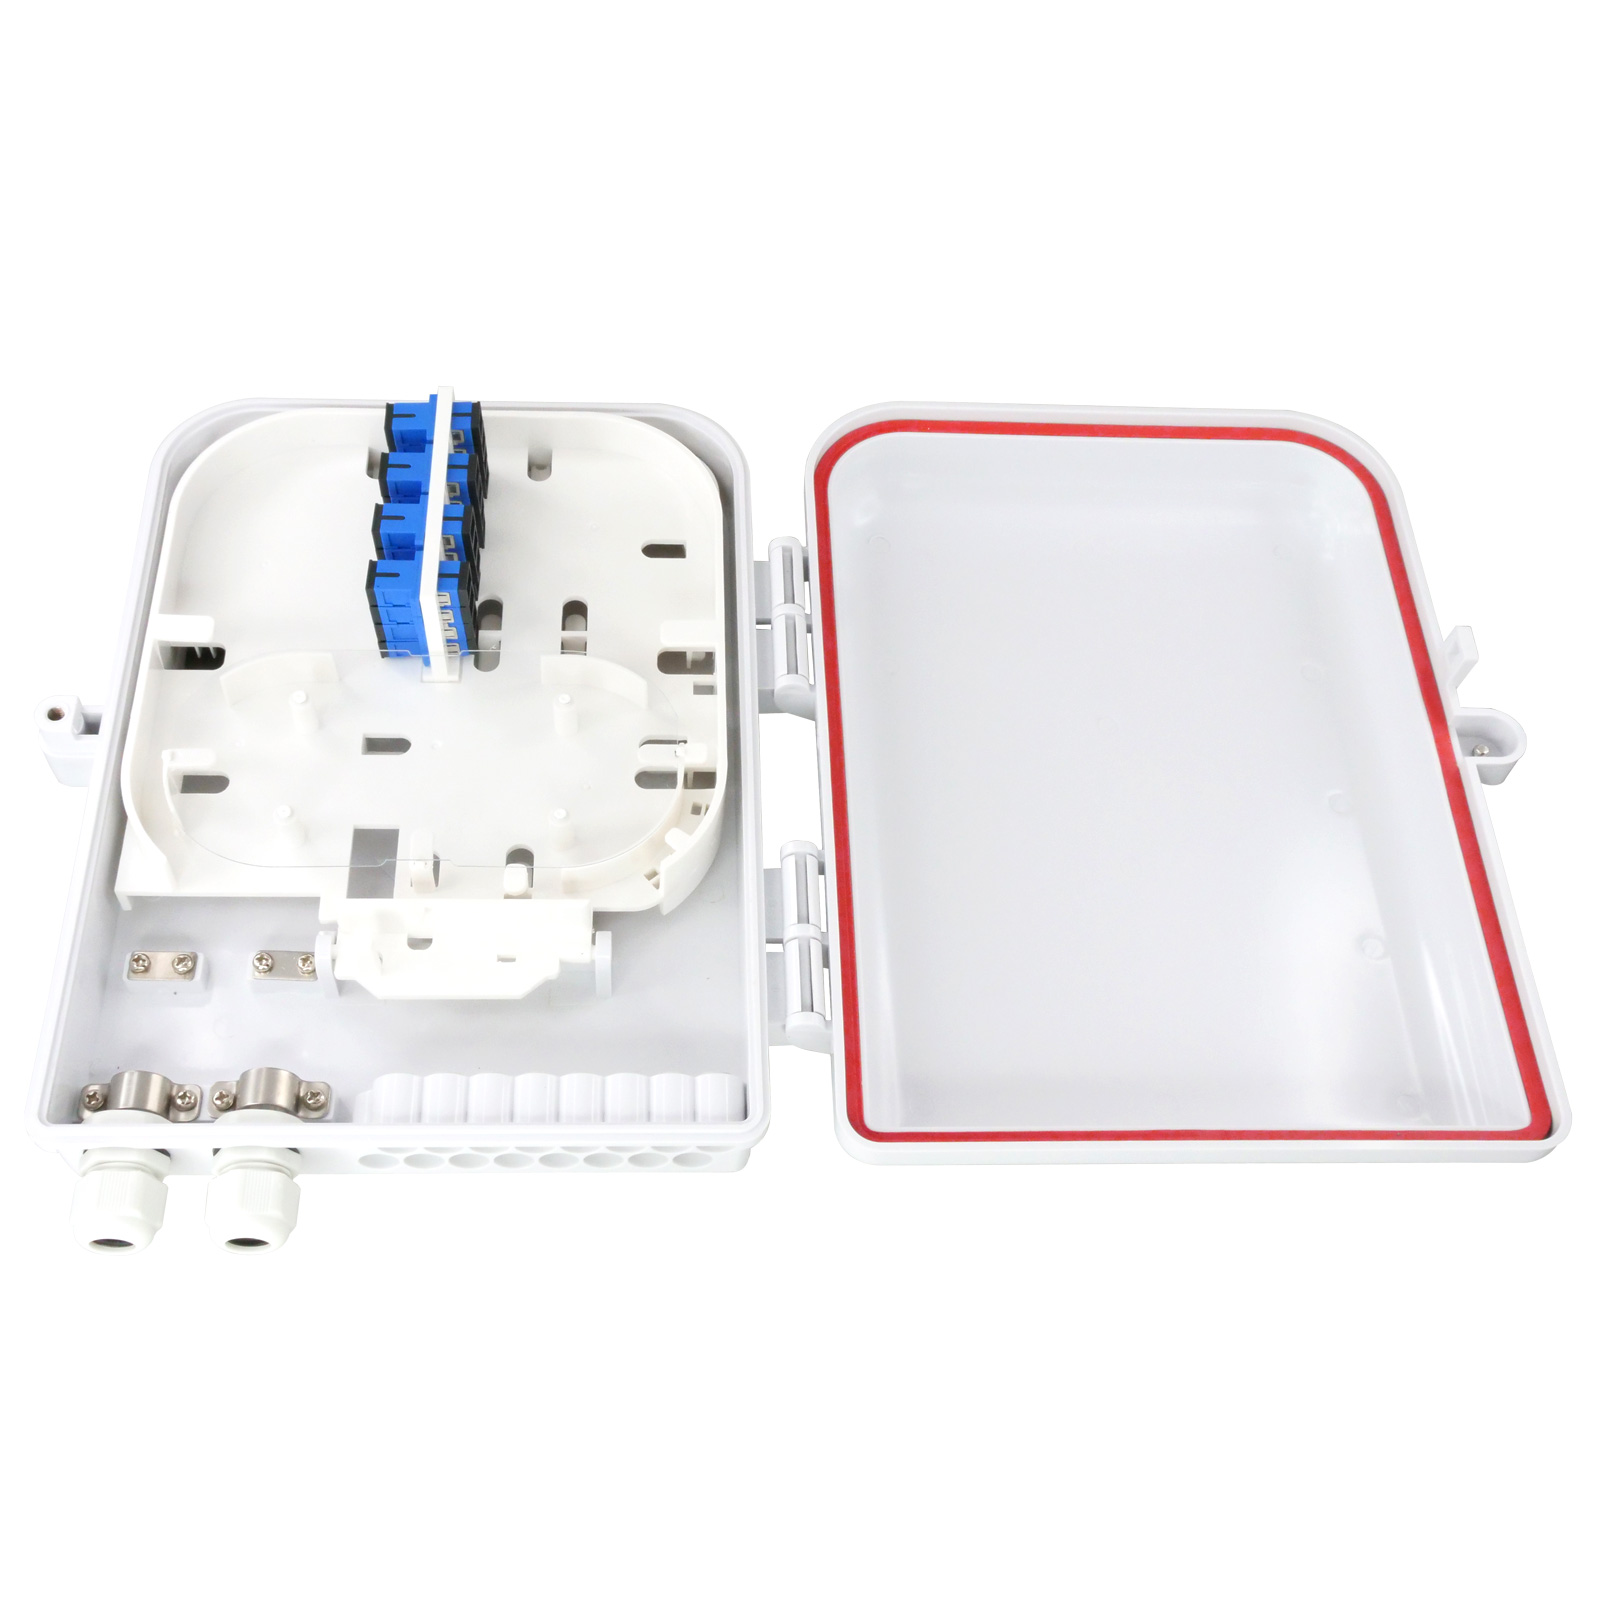 16 Port UV and Weather Resistant FTTH Fiber Termination Box, Wall Mount or Pole Mount